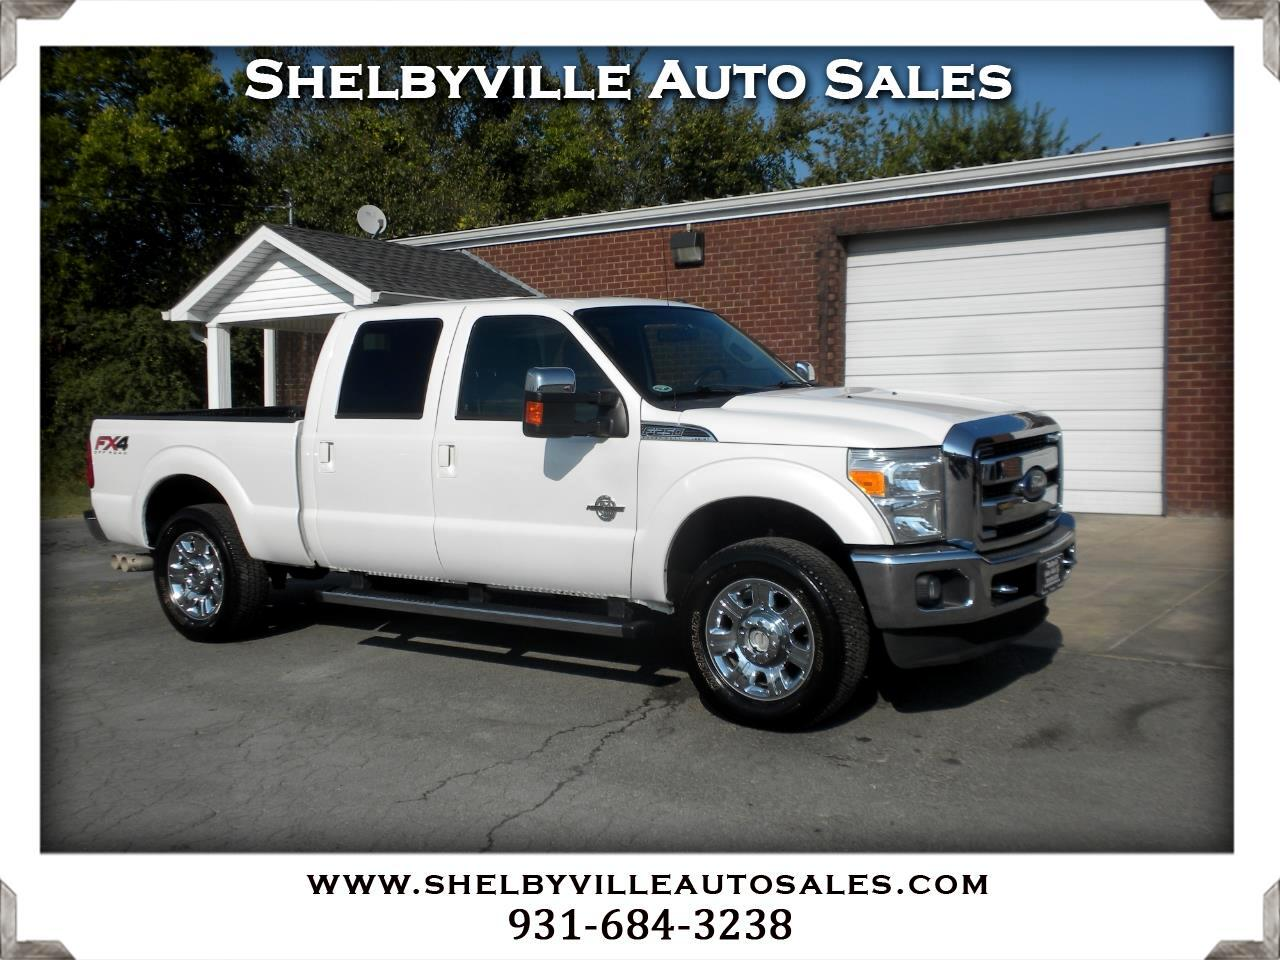 2012 Ford Super Duty F-250 SRW 4X4 Crew Cab Laraiat